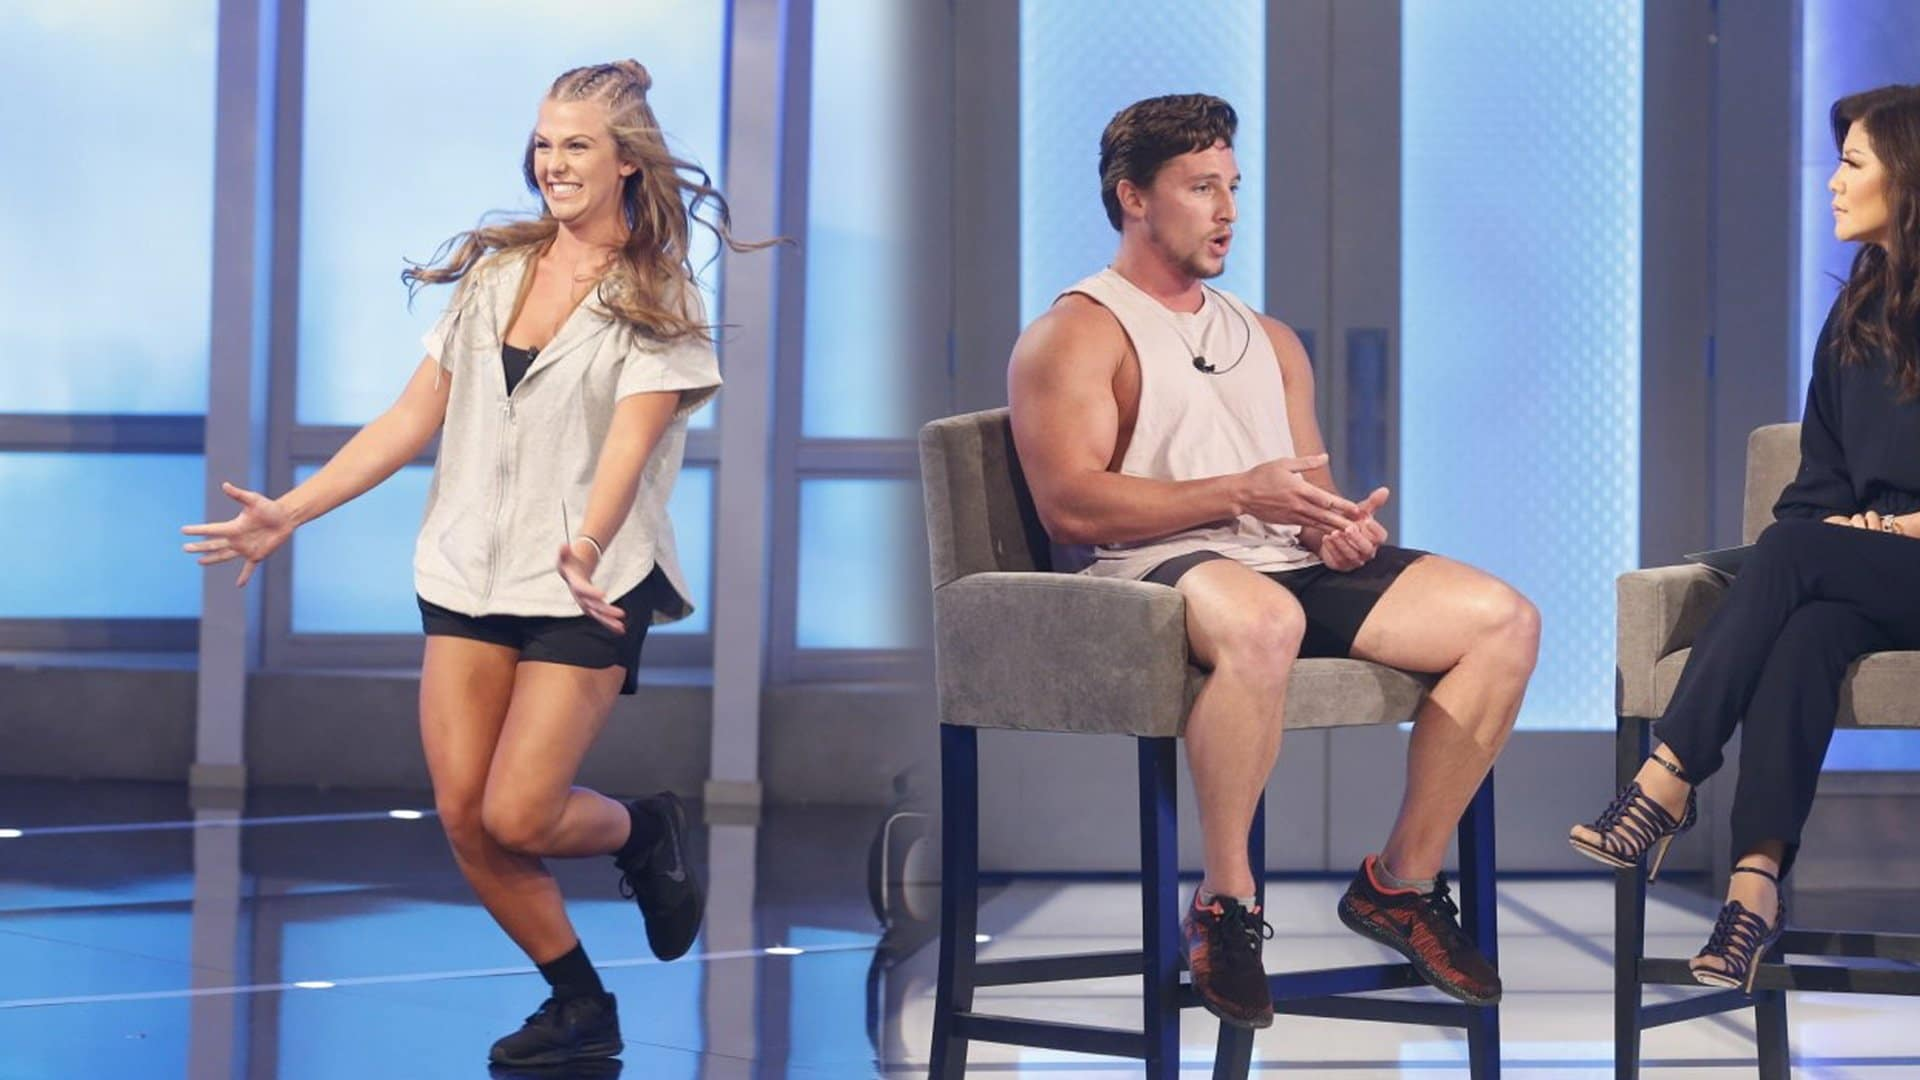 Haleigh Broucher and Brett Robinson out in Big Brother